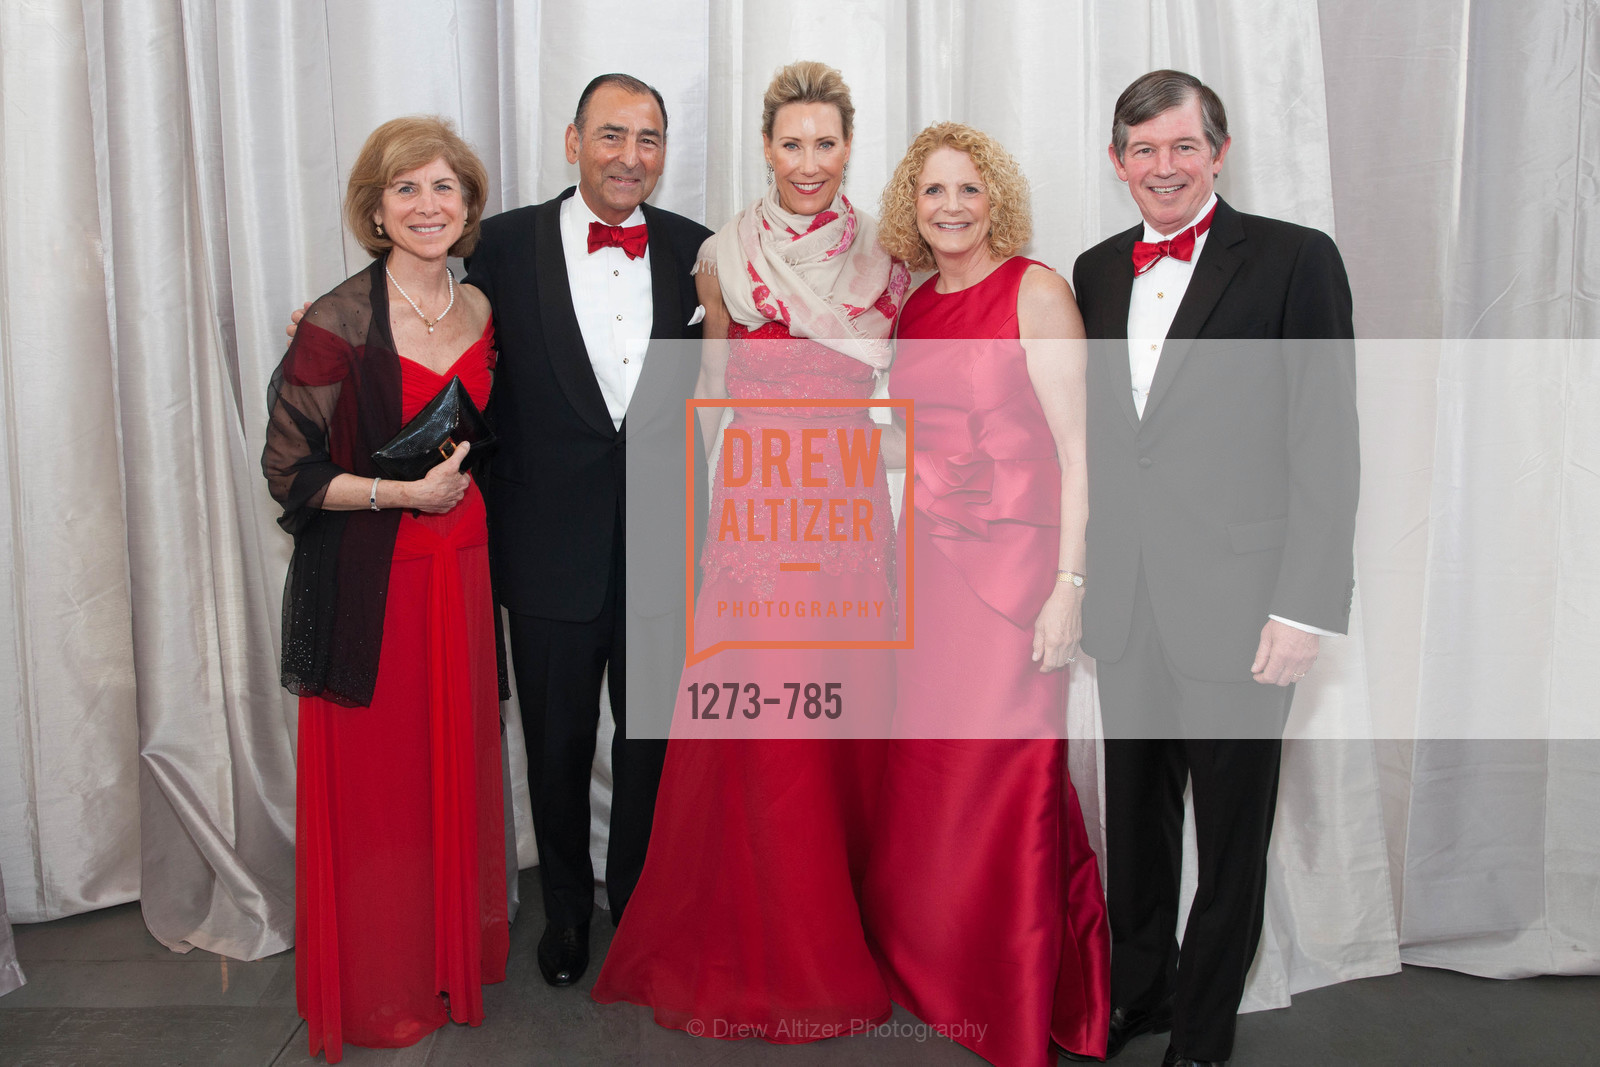 Gail McGovern, Alexander Mehran, Carolyn Mehran, Sarah Earley, Anthony Earley, 2015 RED CROSS Gala, US, April 11th, 2015,Drew Altizer, Drew Altizer Photography, full-service agency, private events, San Francisco photographer, photographer california